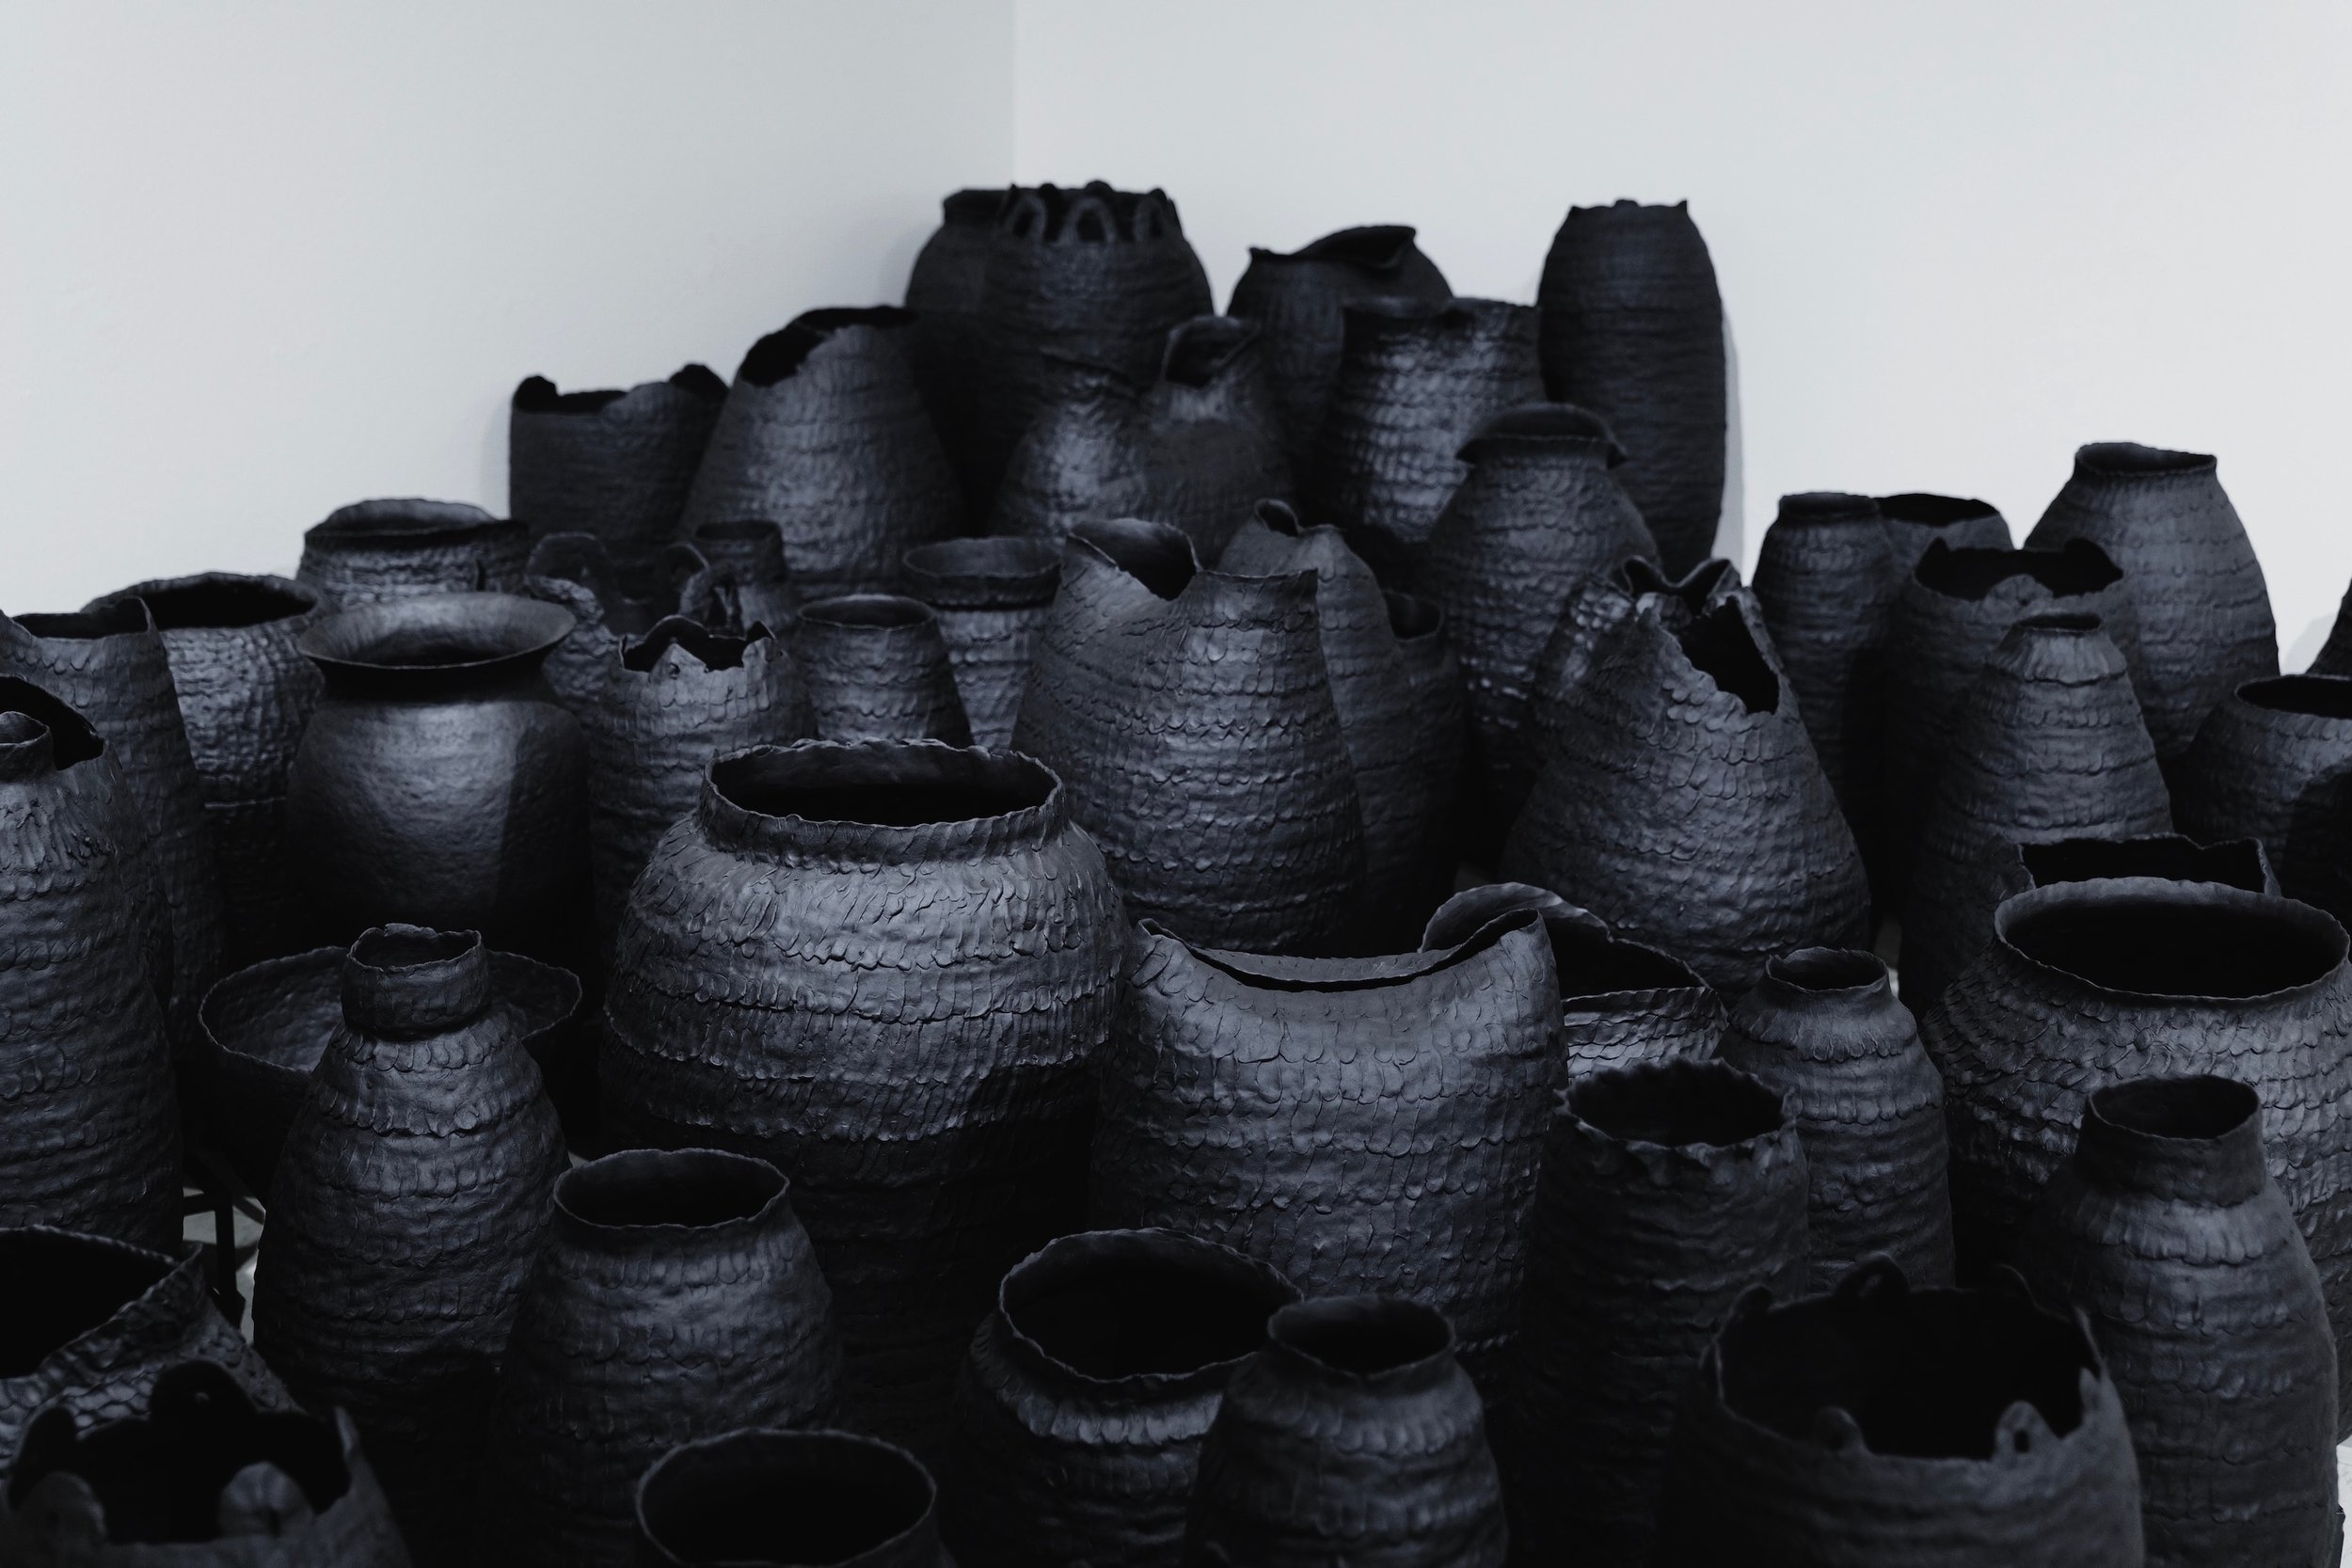 AMoCA Collection  |  Urns  (detail), ceramic, metal, dimensions variable, 2019